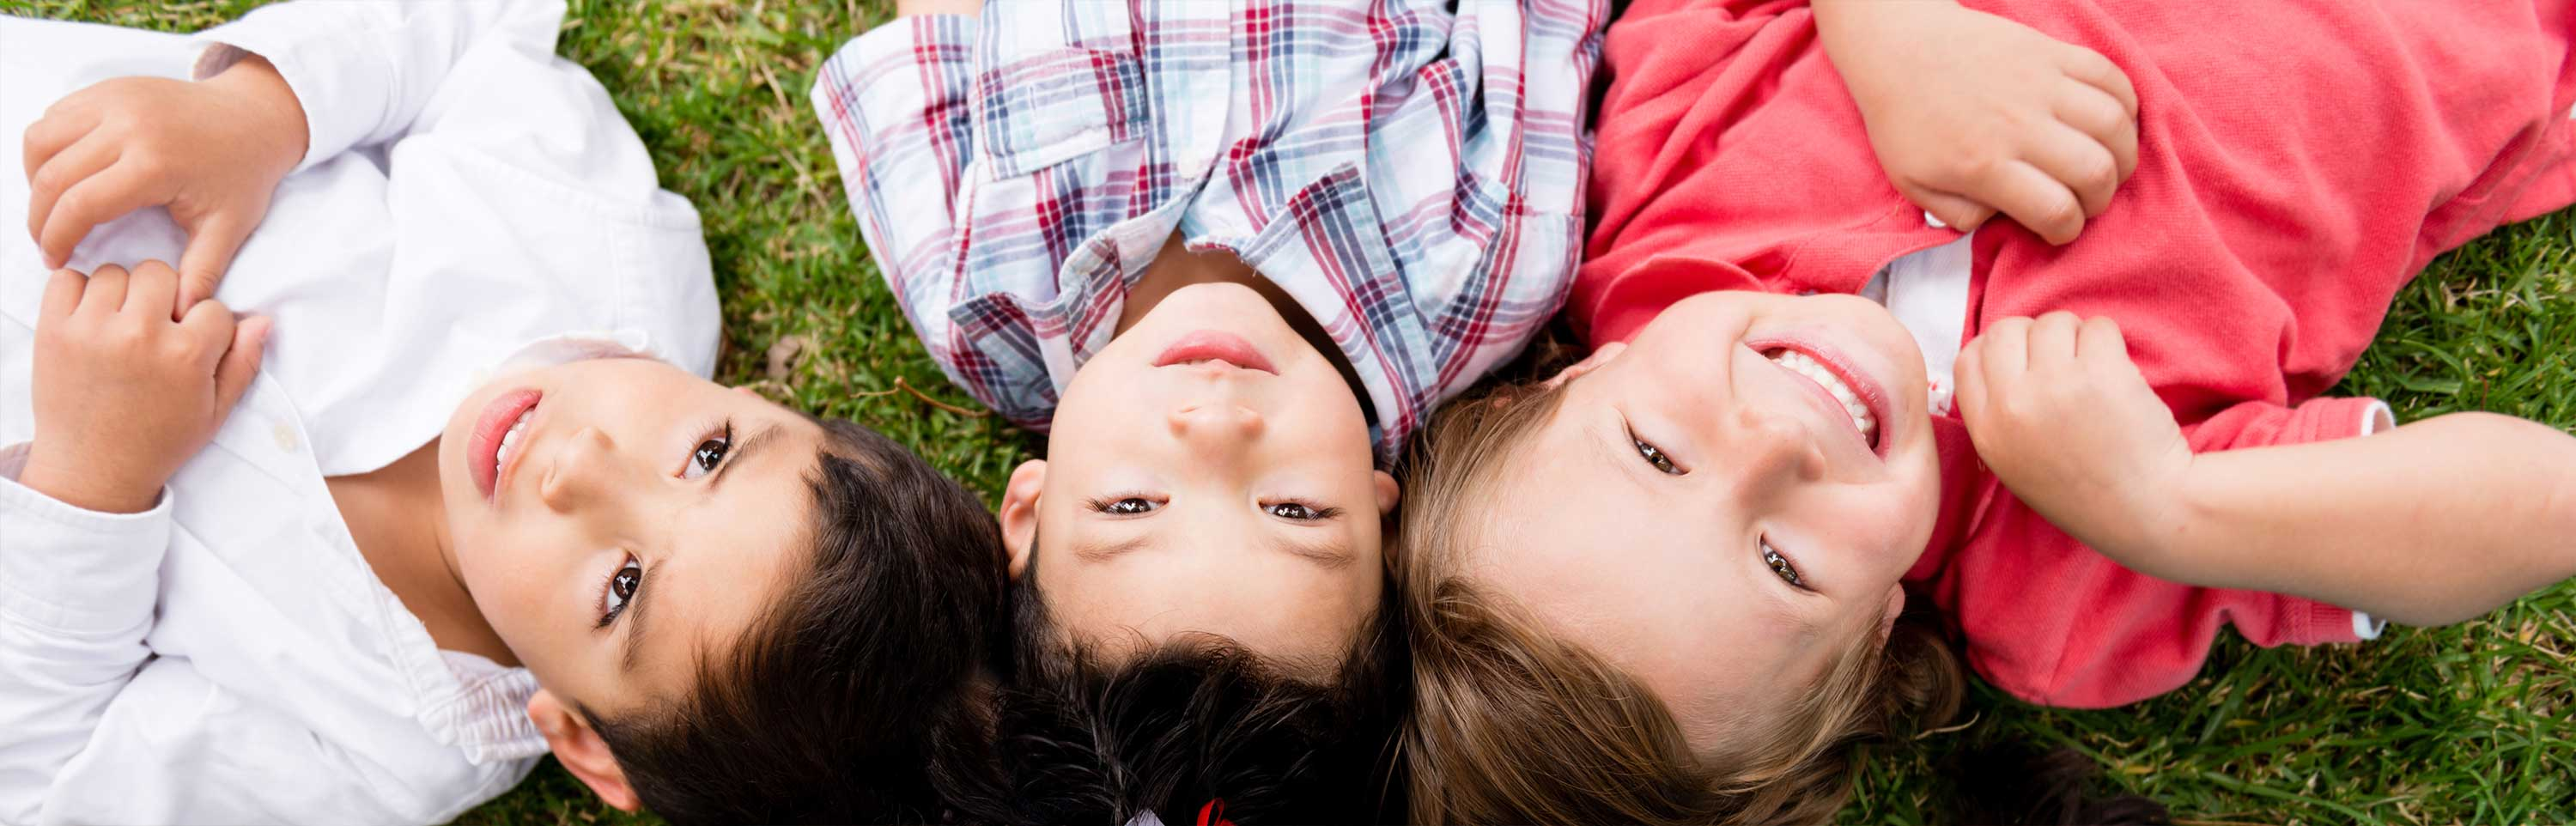 Children lay on the grass at the park